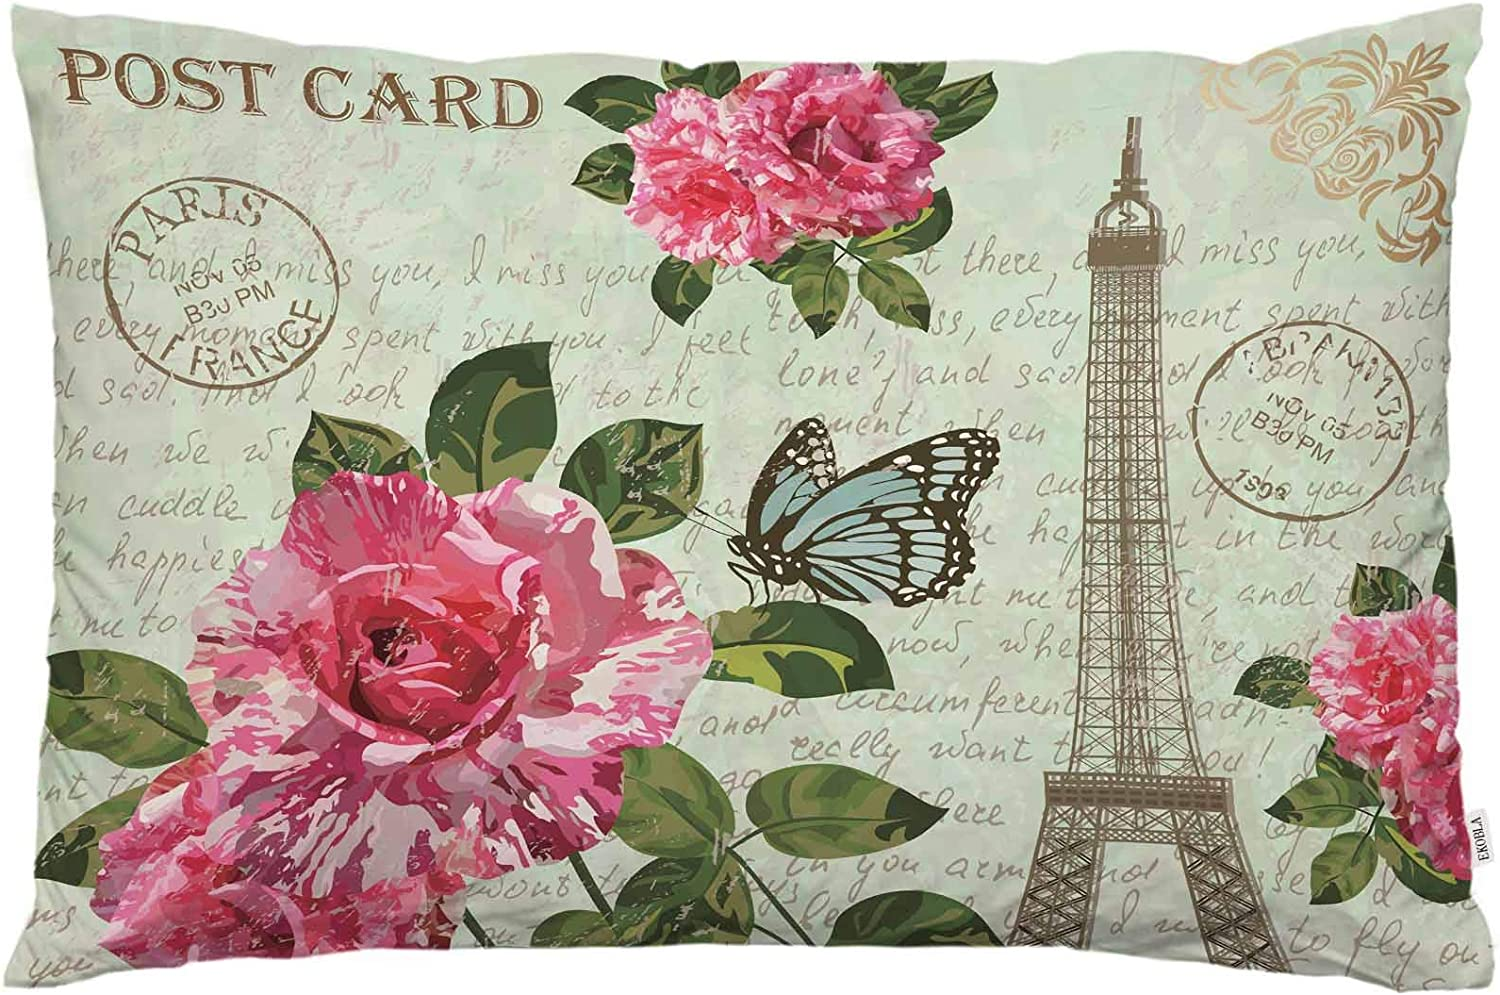 EKOBLA Throw Pillow Cover Eiffel Tower Vintage French Postcard Love Paris Romantic Flowers Butterfly Decor Lumbar Pillow Case Cushion for Sofa Couch Bed Standard Queen Size 20x30 Inch